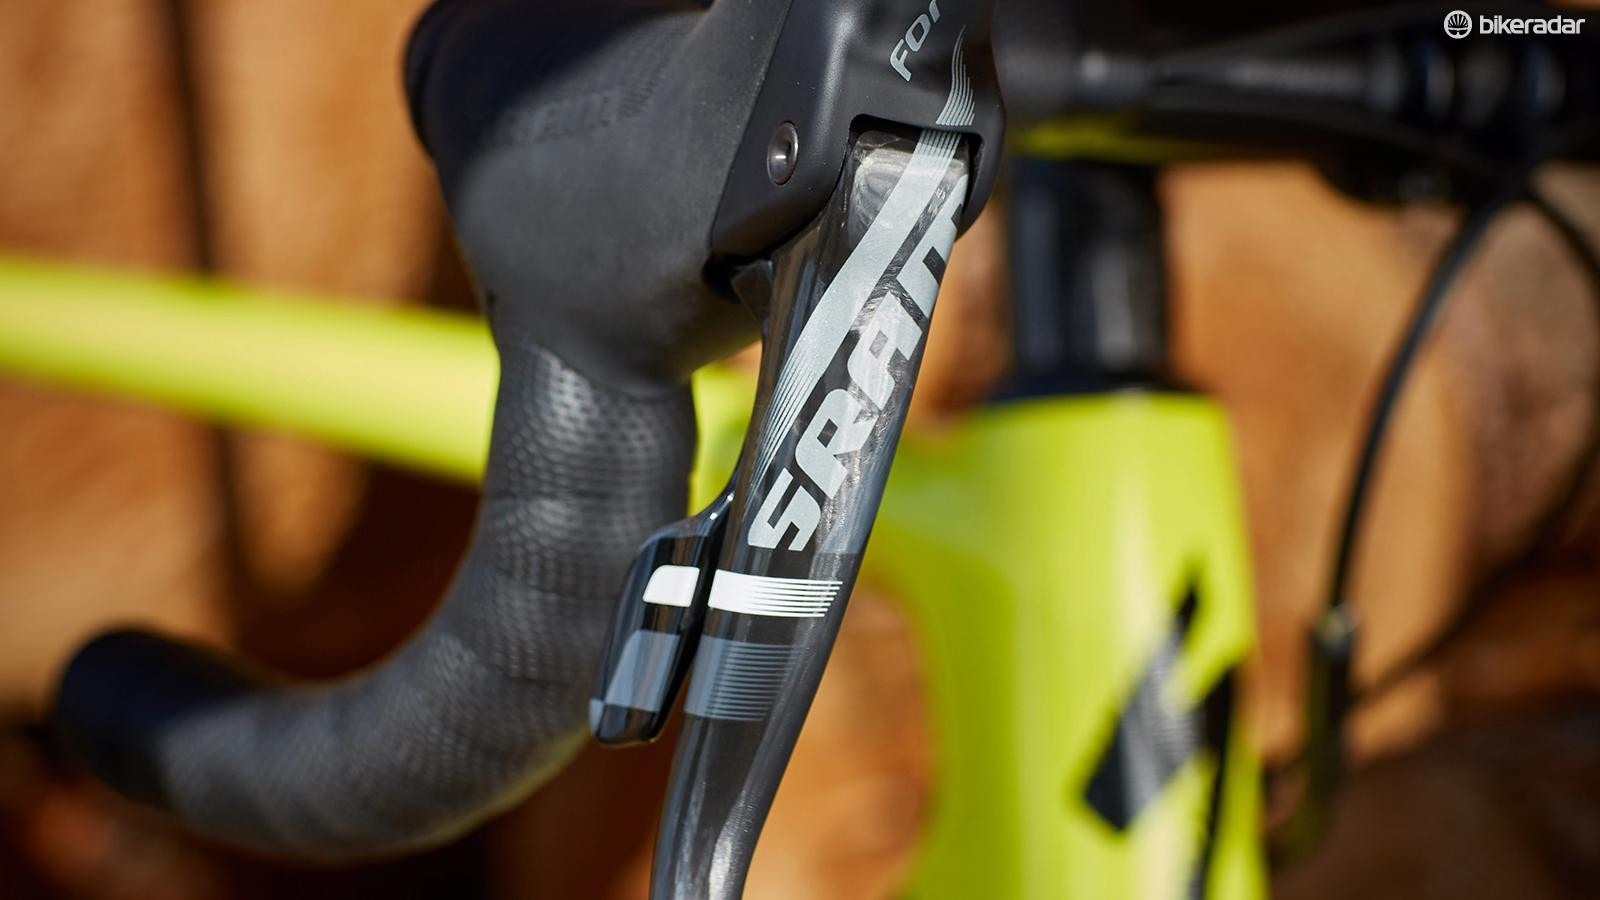 SRAM's Force 1 takes care of stopping duties, ably and consistently